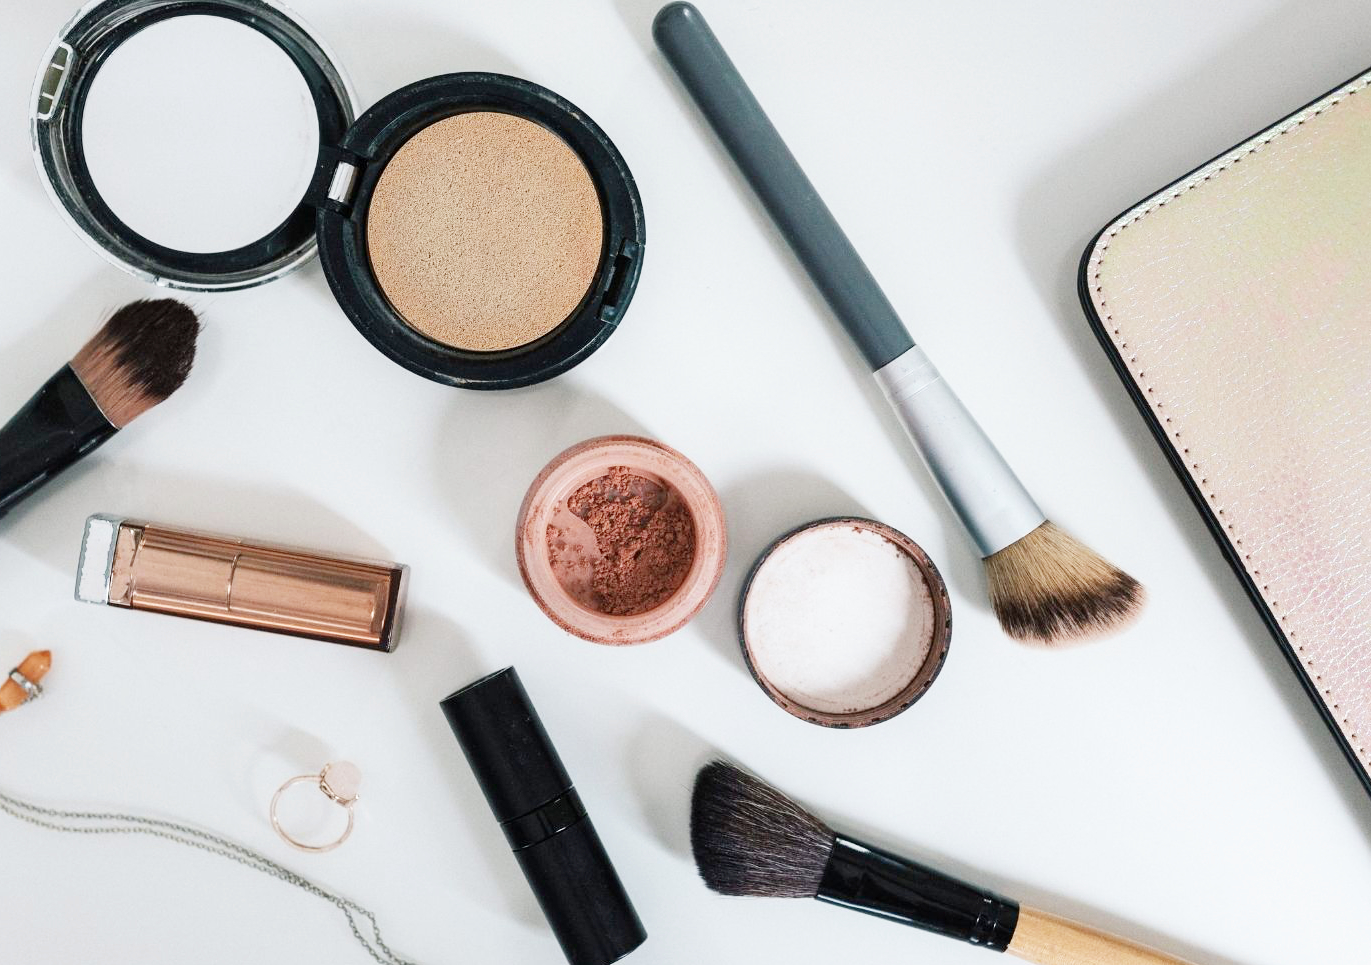 Tired of looking for conscious makeup brands? Feel free to take a shortcut and just copy mine! Here's a list of everything I use, with links directly to each item. Enjoy!